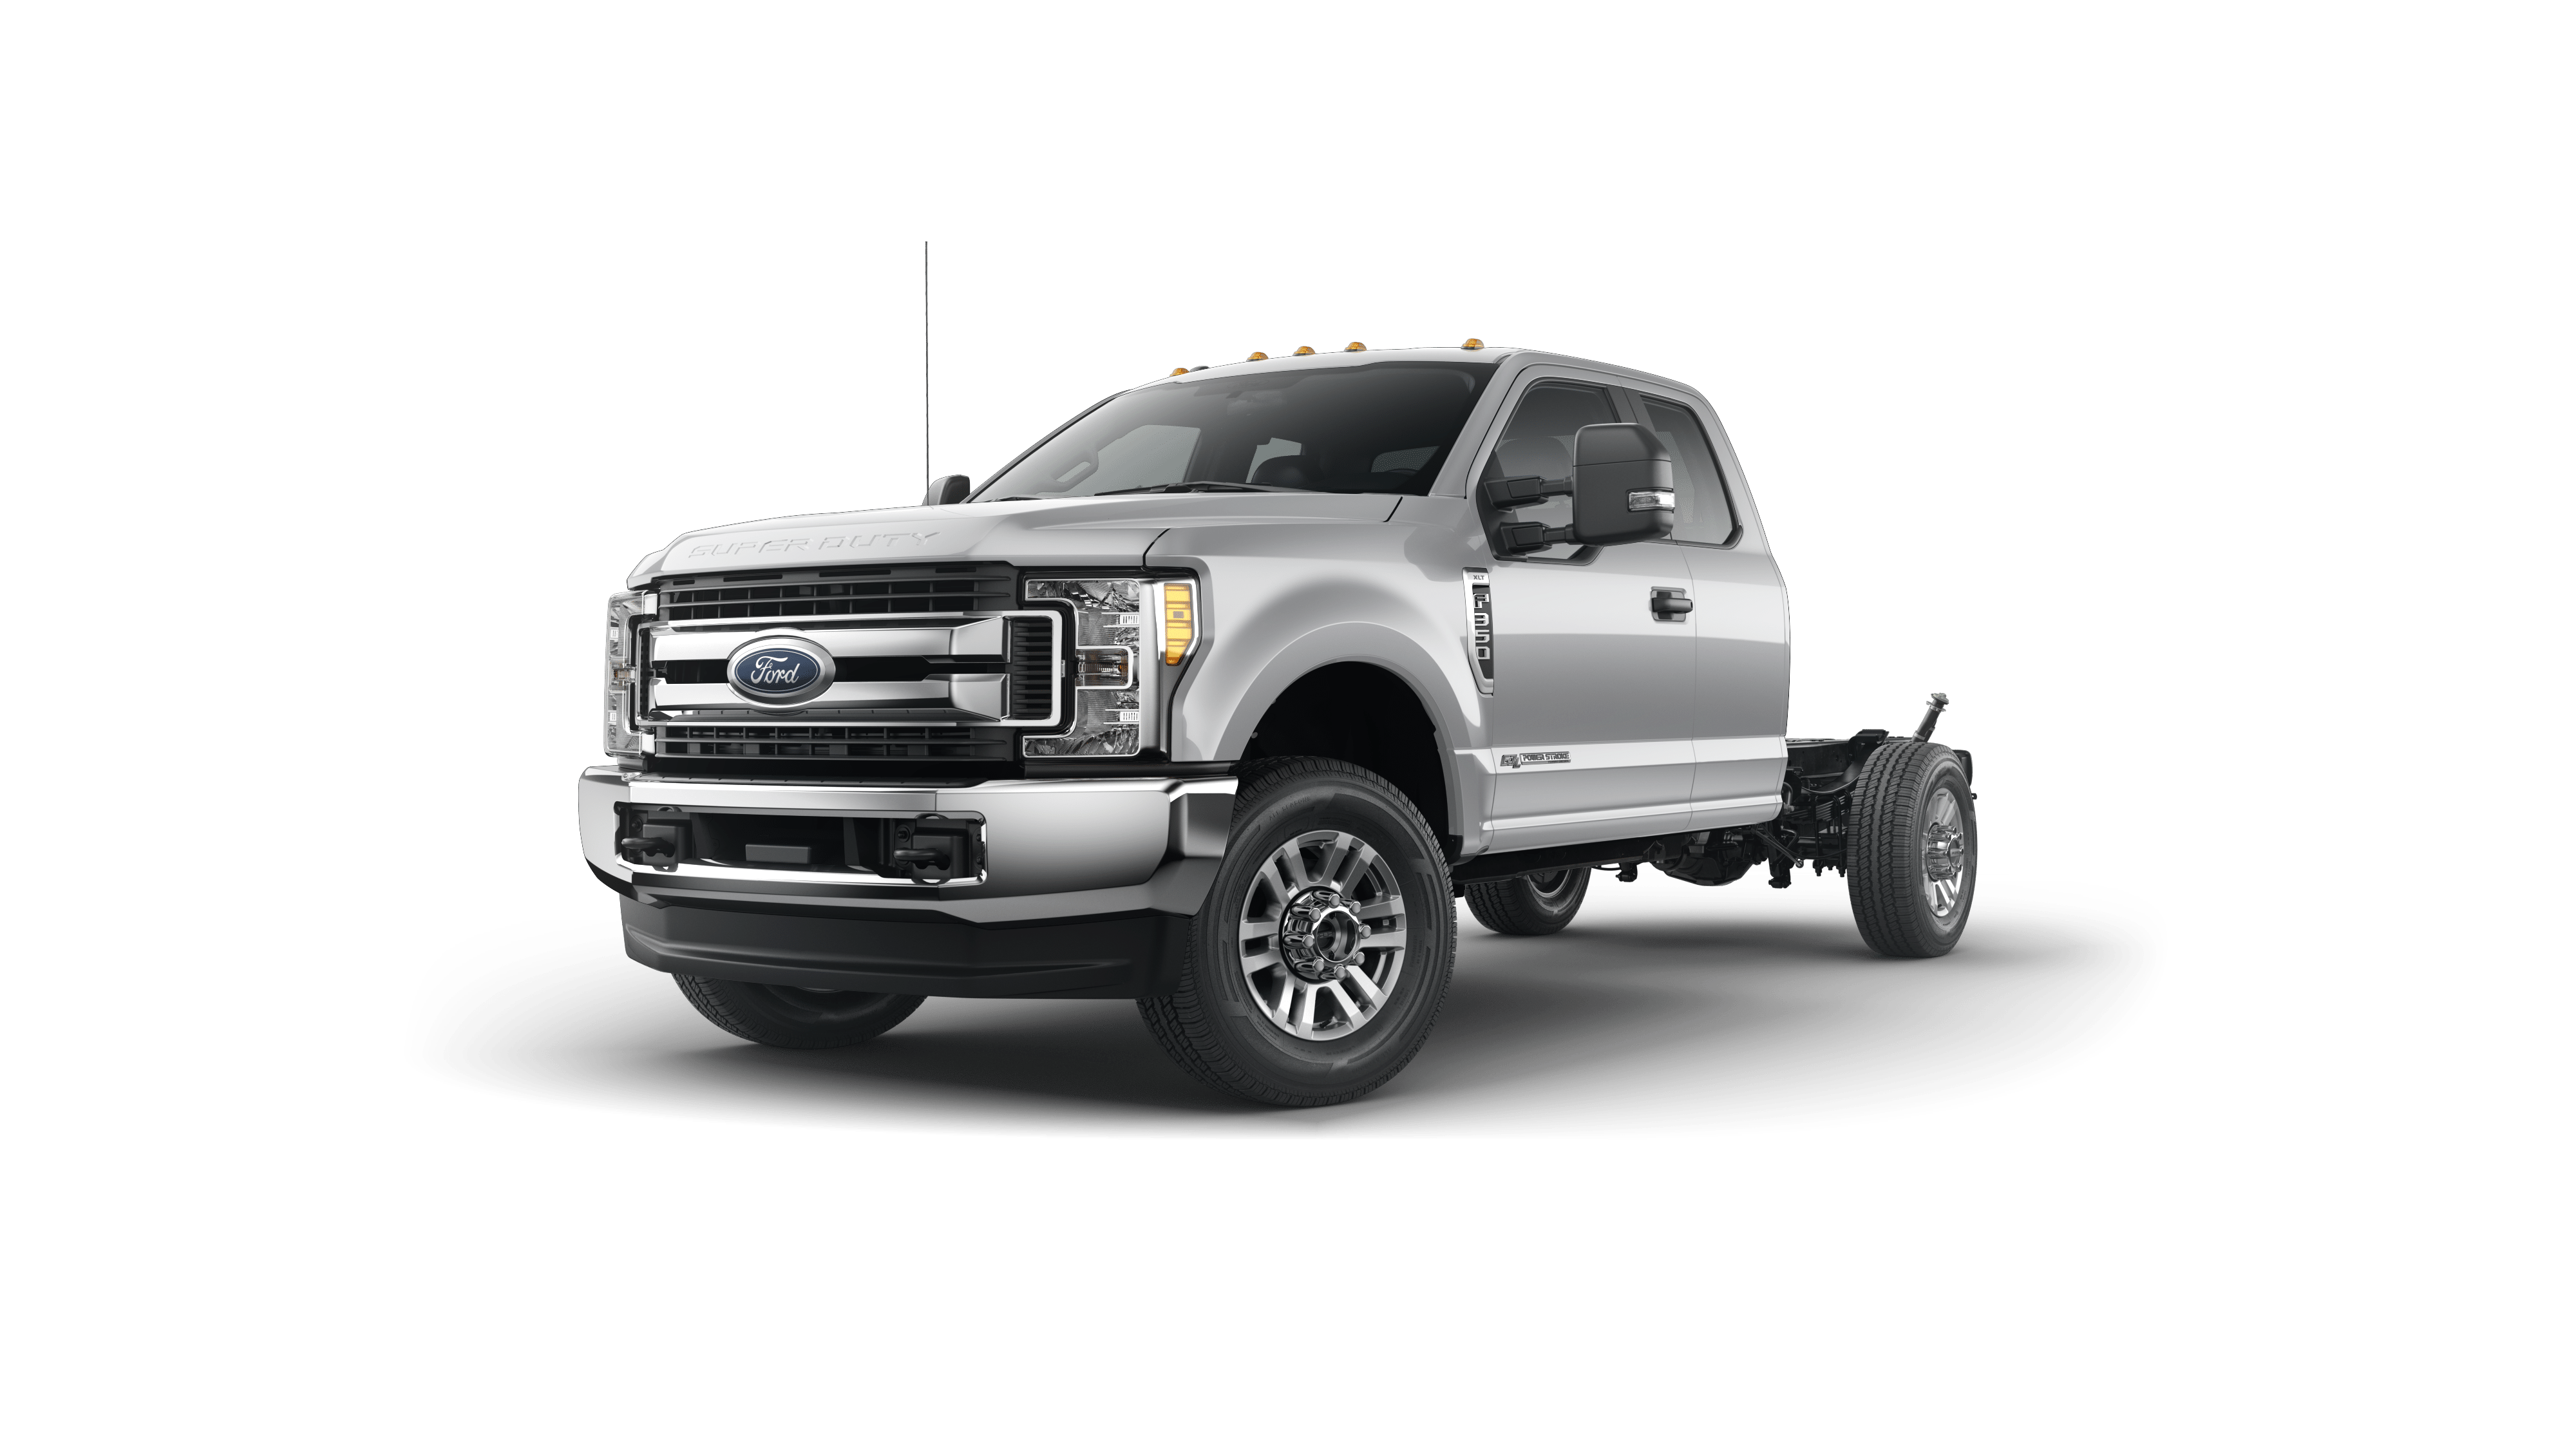 2018 Ford Super Duty F-350 SRW Vehicle Photo in Souderton, PA 18964-1038